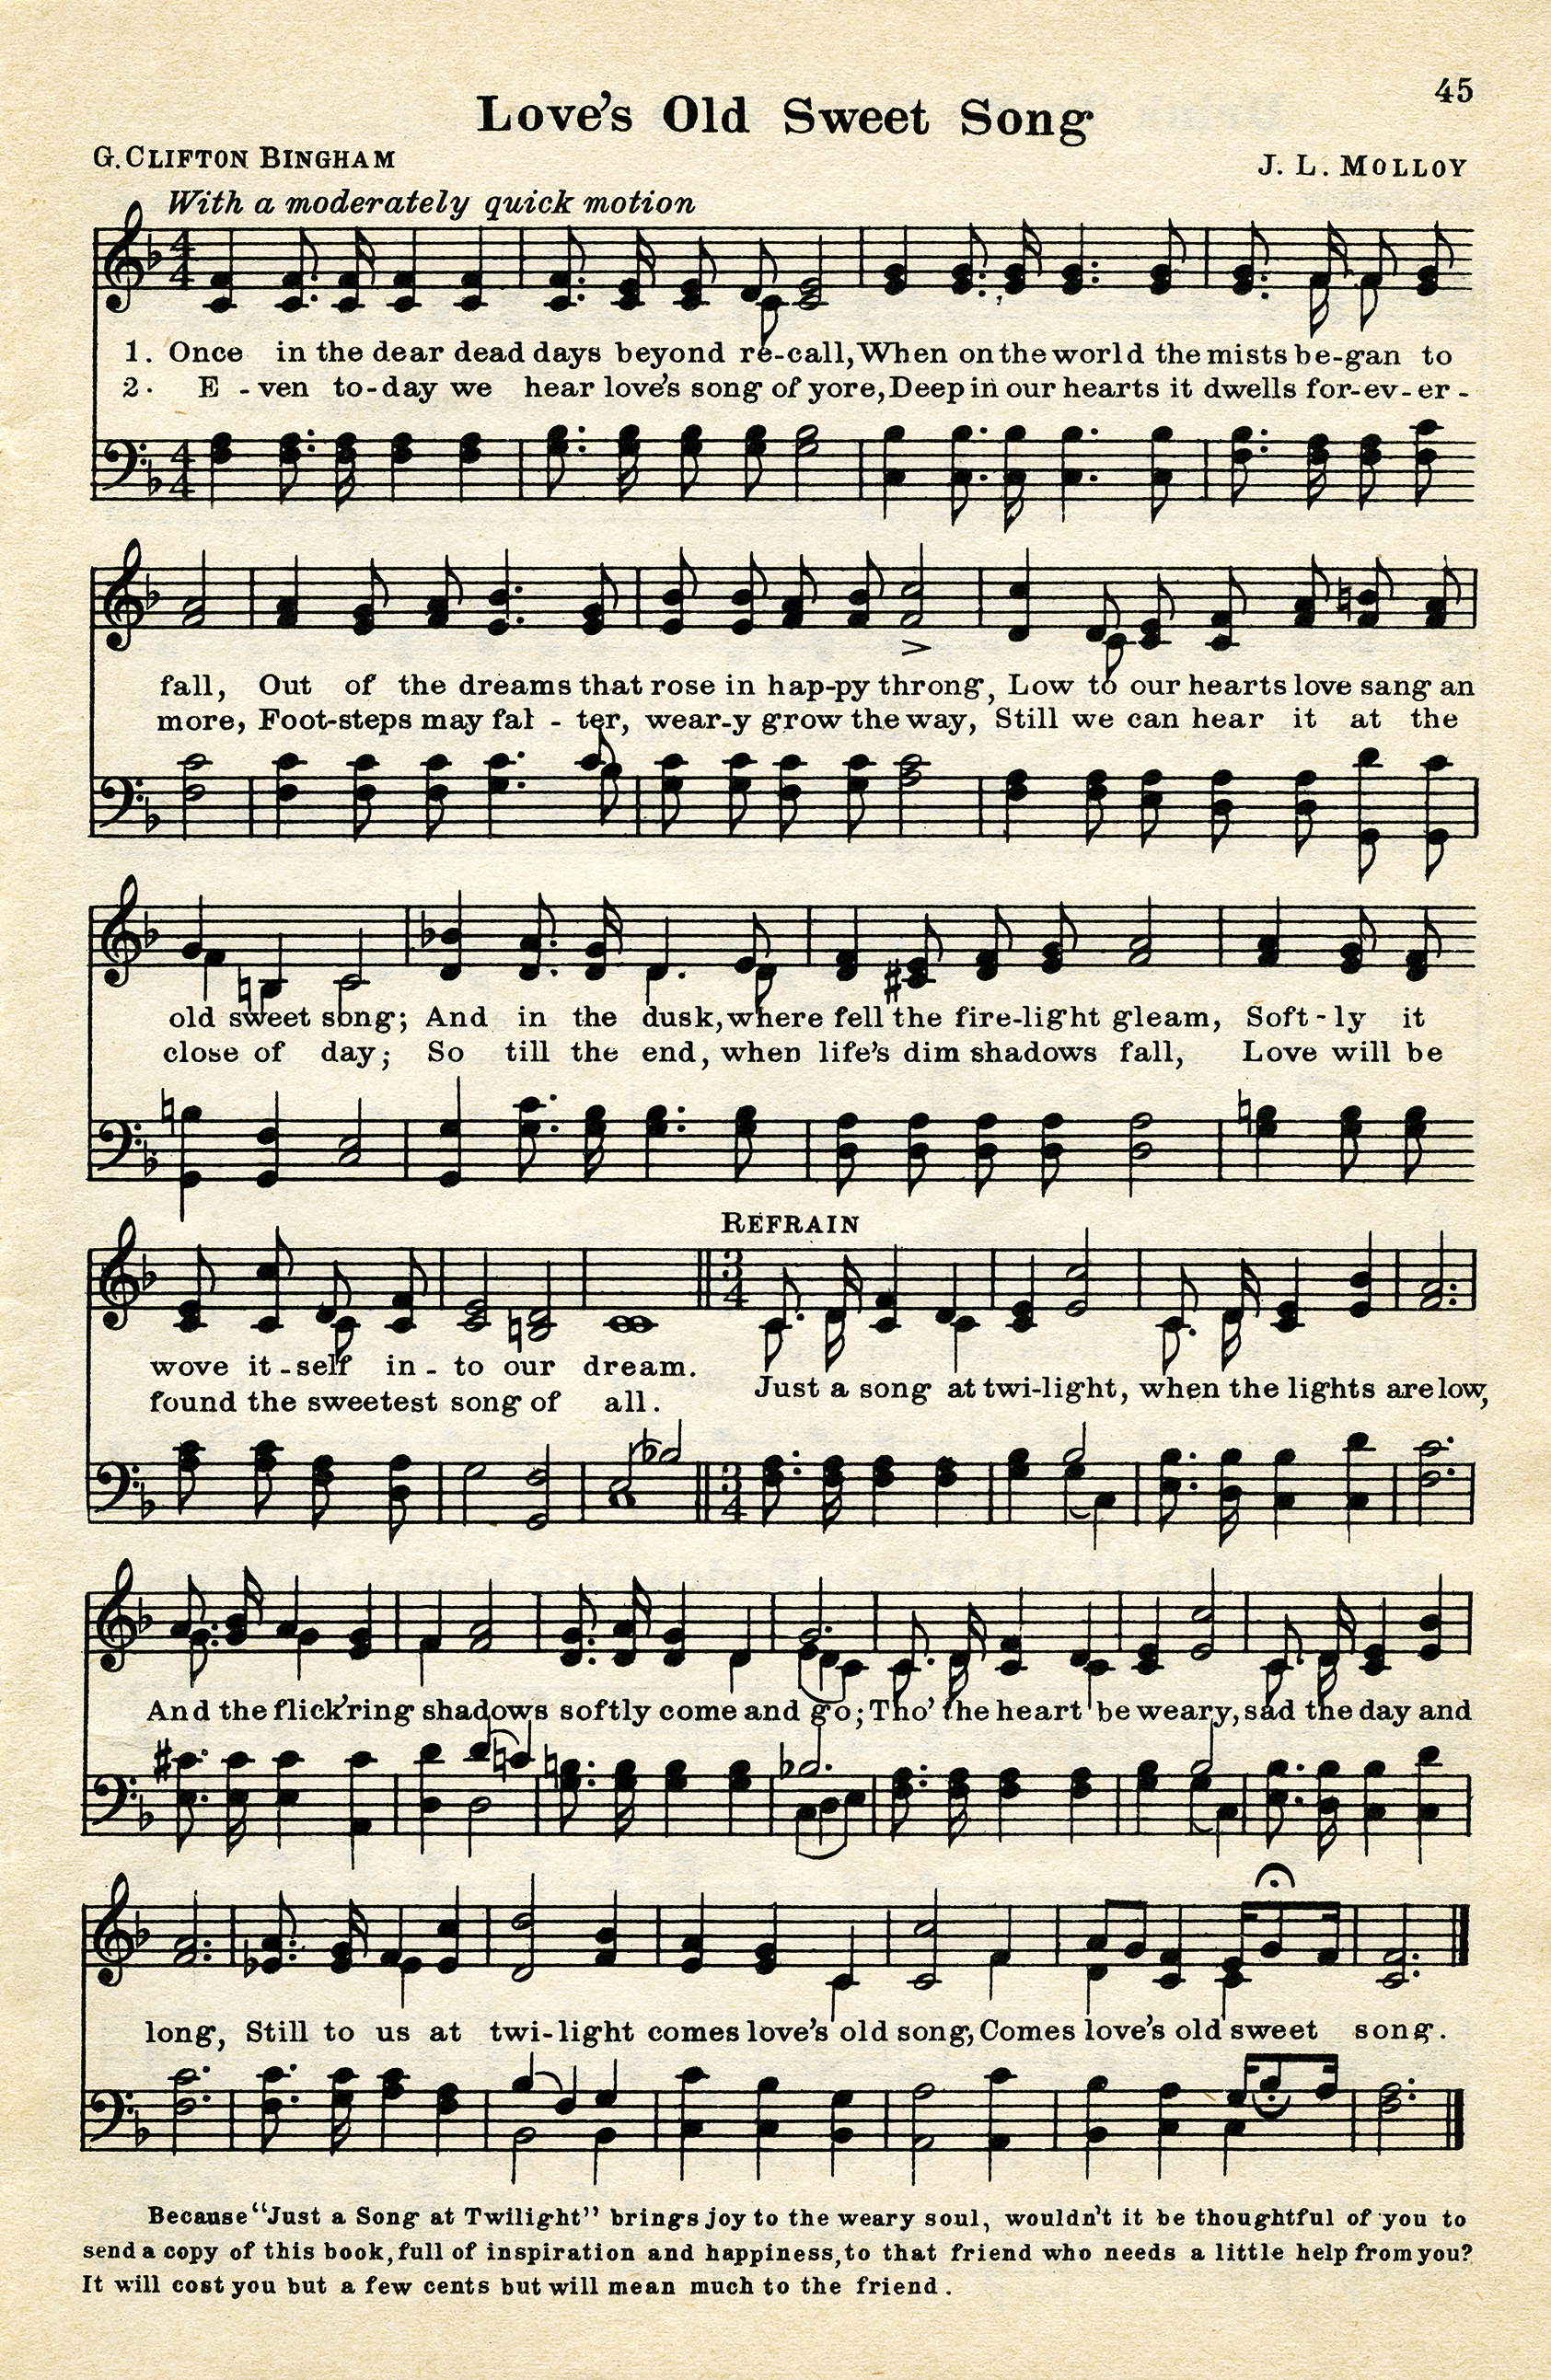 photograph regarding Vintage Sheet Music Printable known as Cost-free Typical Printable Get pleasure from Music Sheet Tunes - Previous Design and style